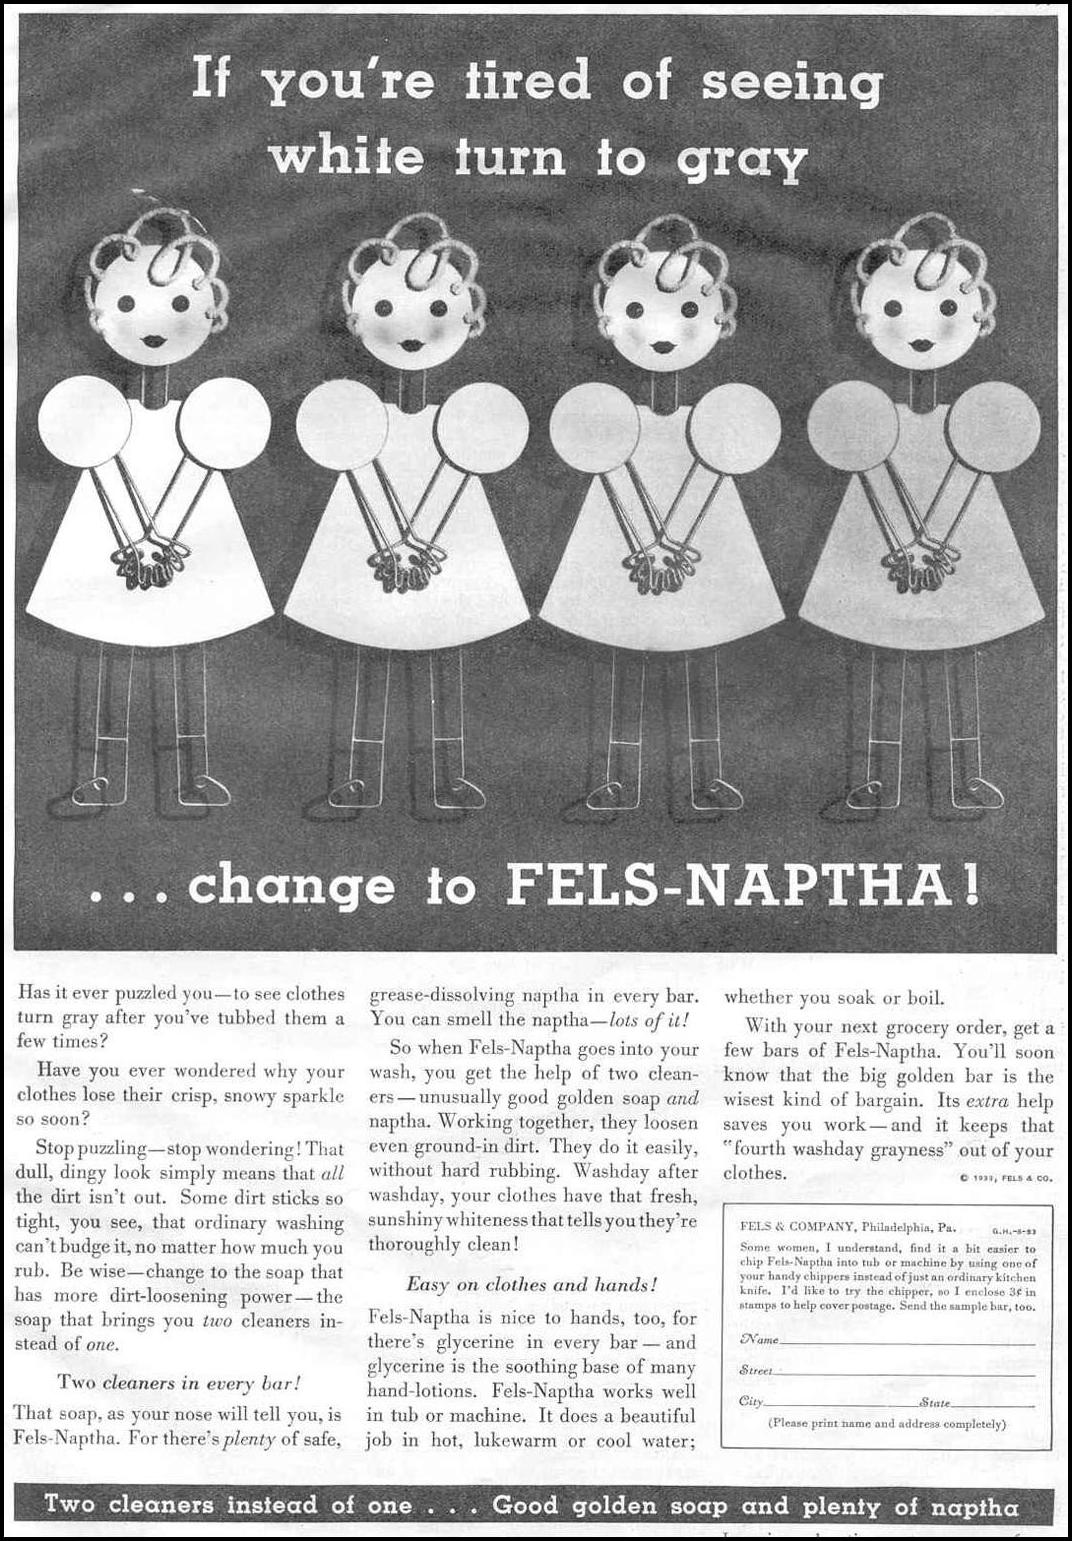 FELS-NAPTHA SOAP